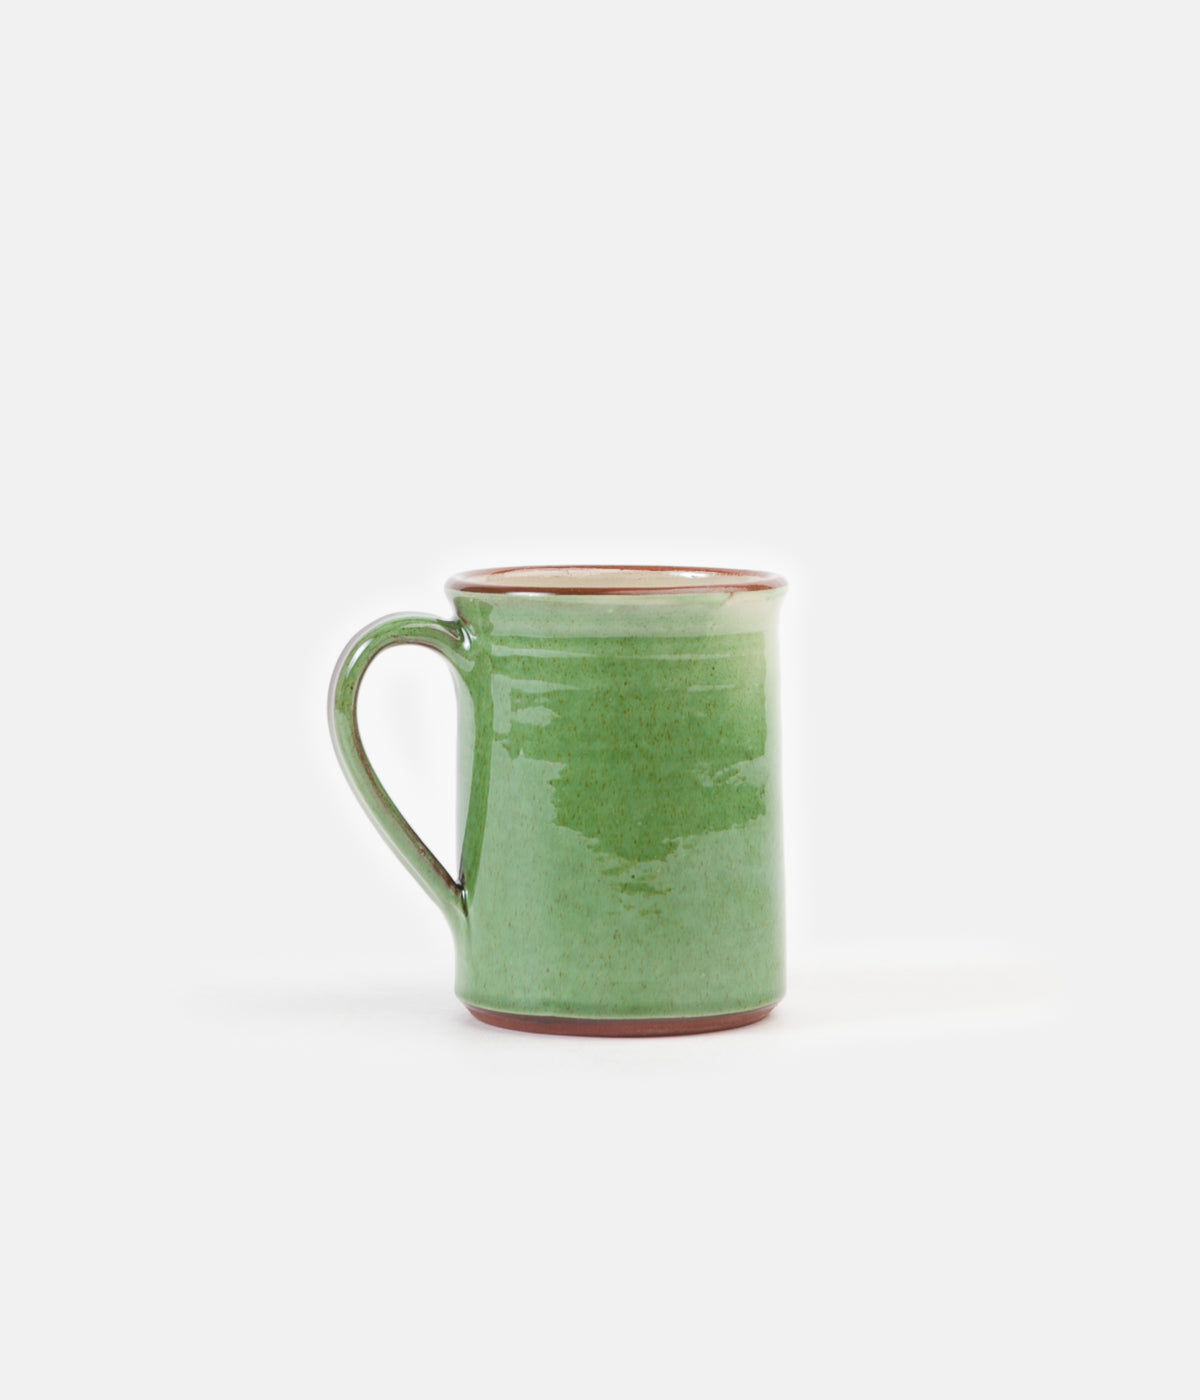 Tender Hand Thrown Natural Red Clay Coffee Mug Green Glaze Always In Colour